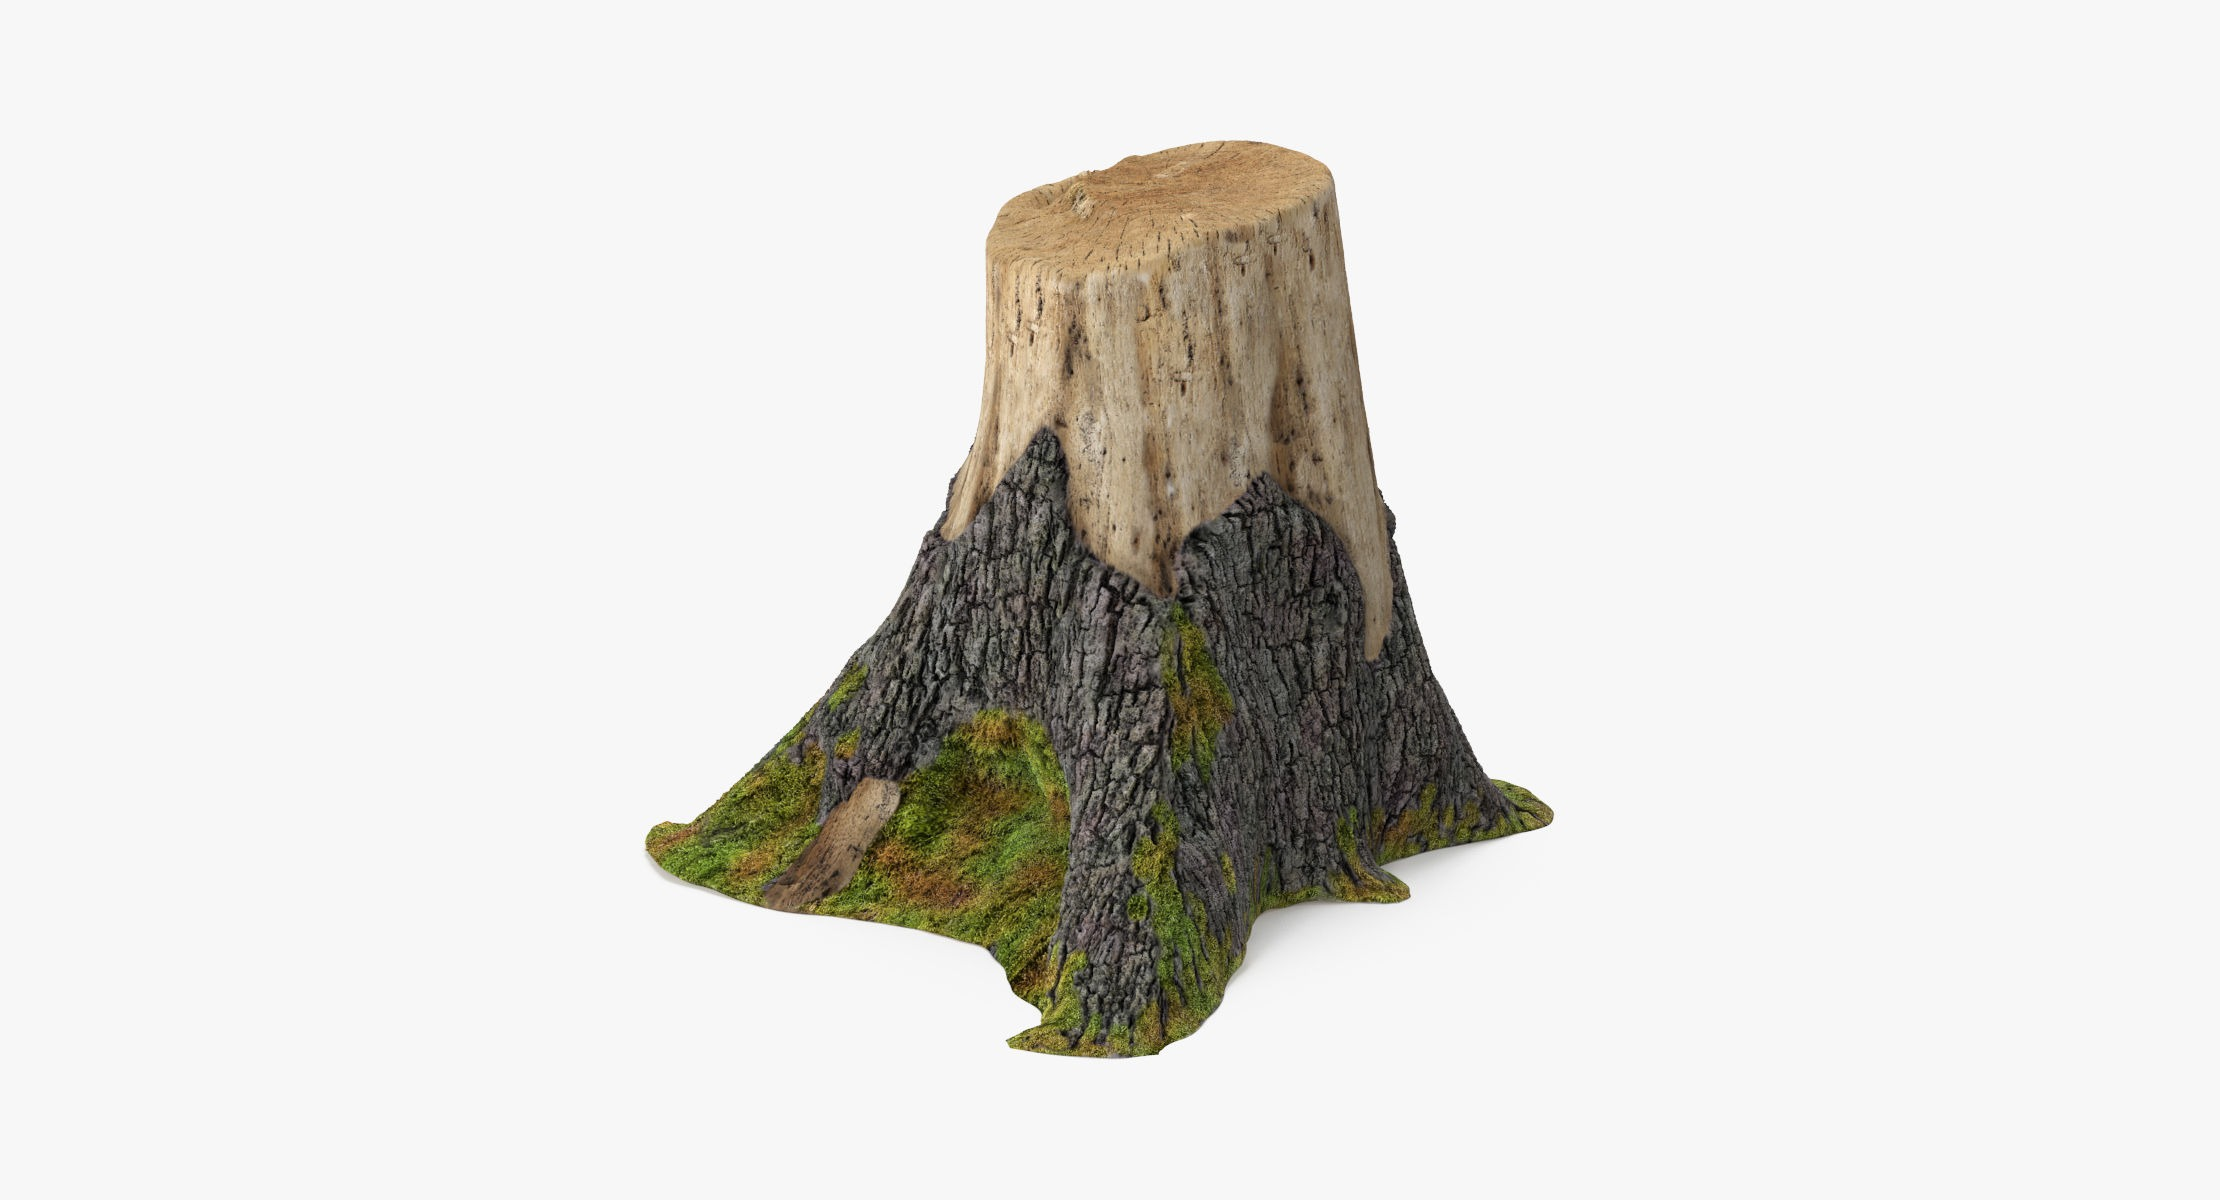 Tree Stump 02 - reel 1